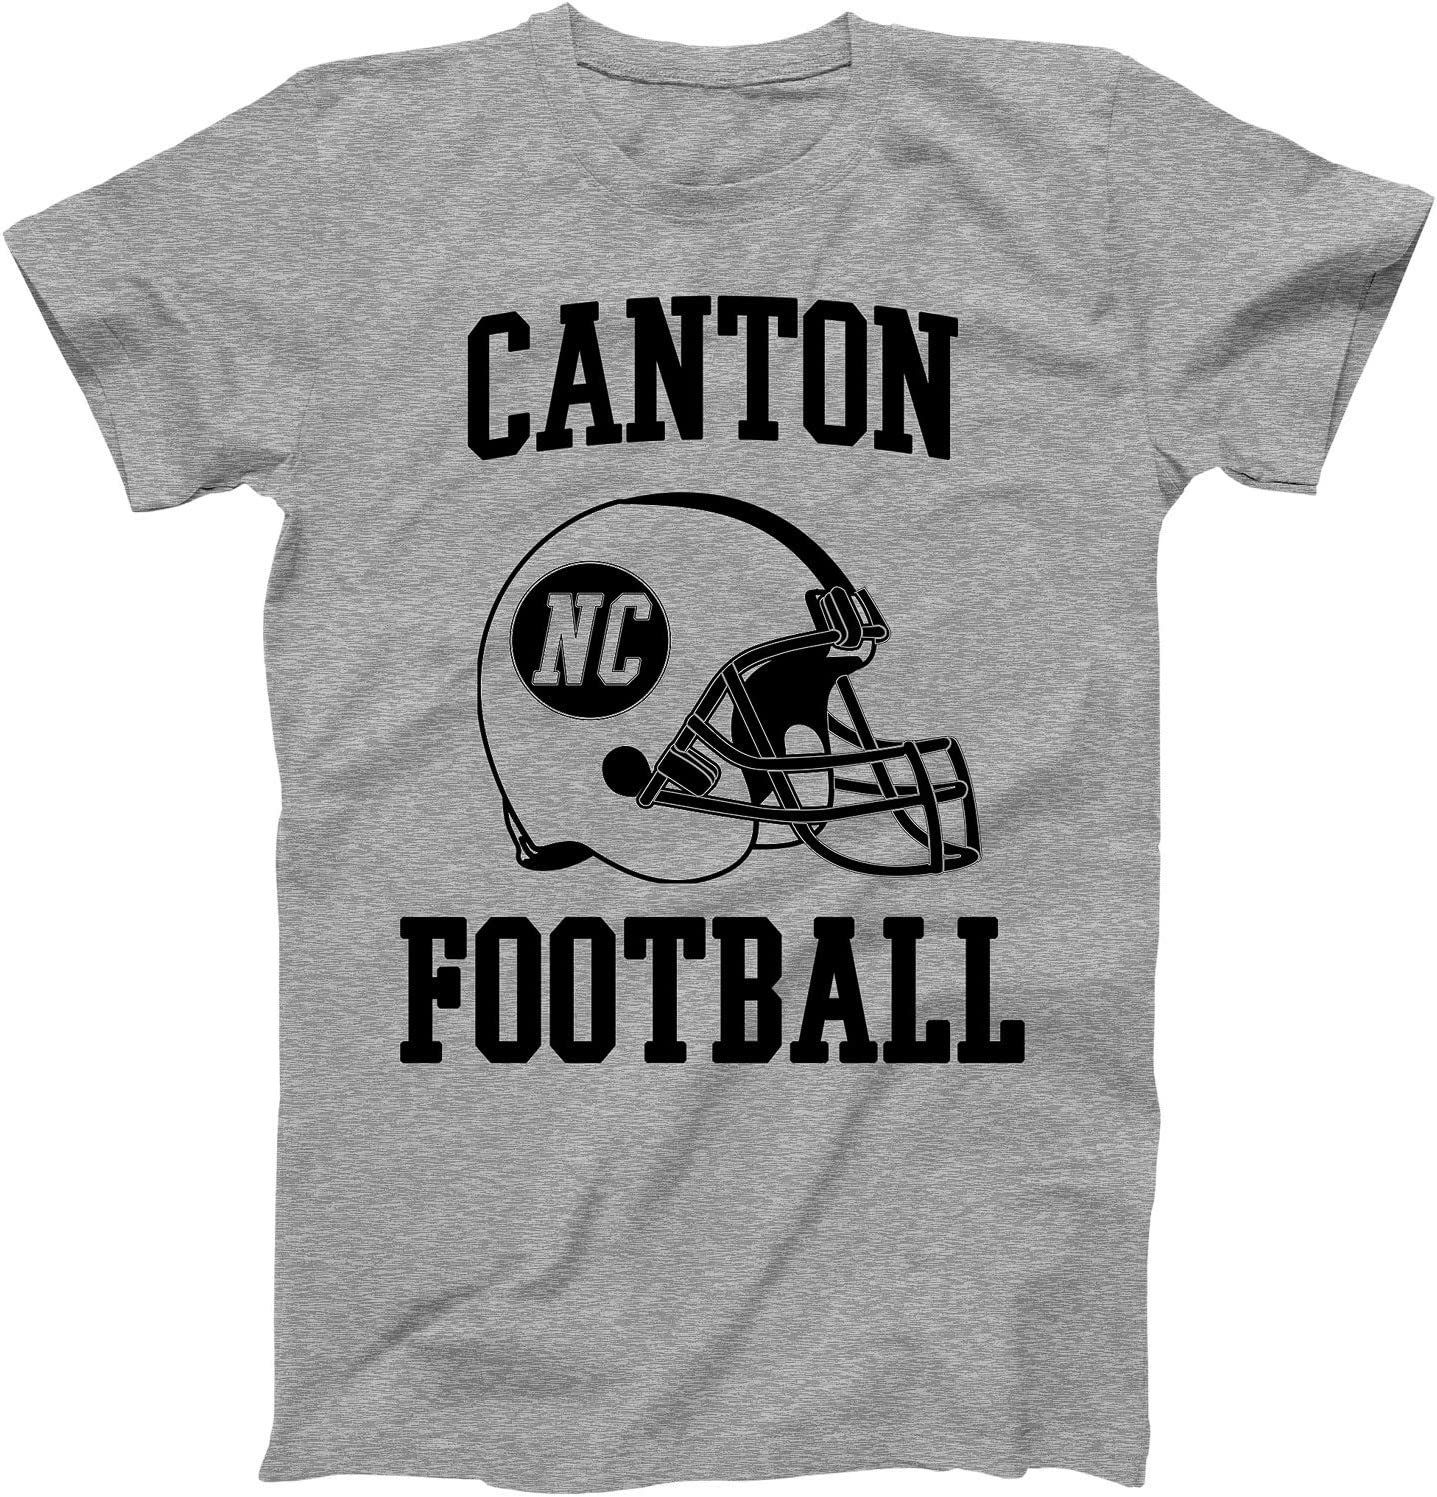 Vintage Football City Canton Shirt for State North Carolina with NC on Retro Helmet Style